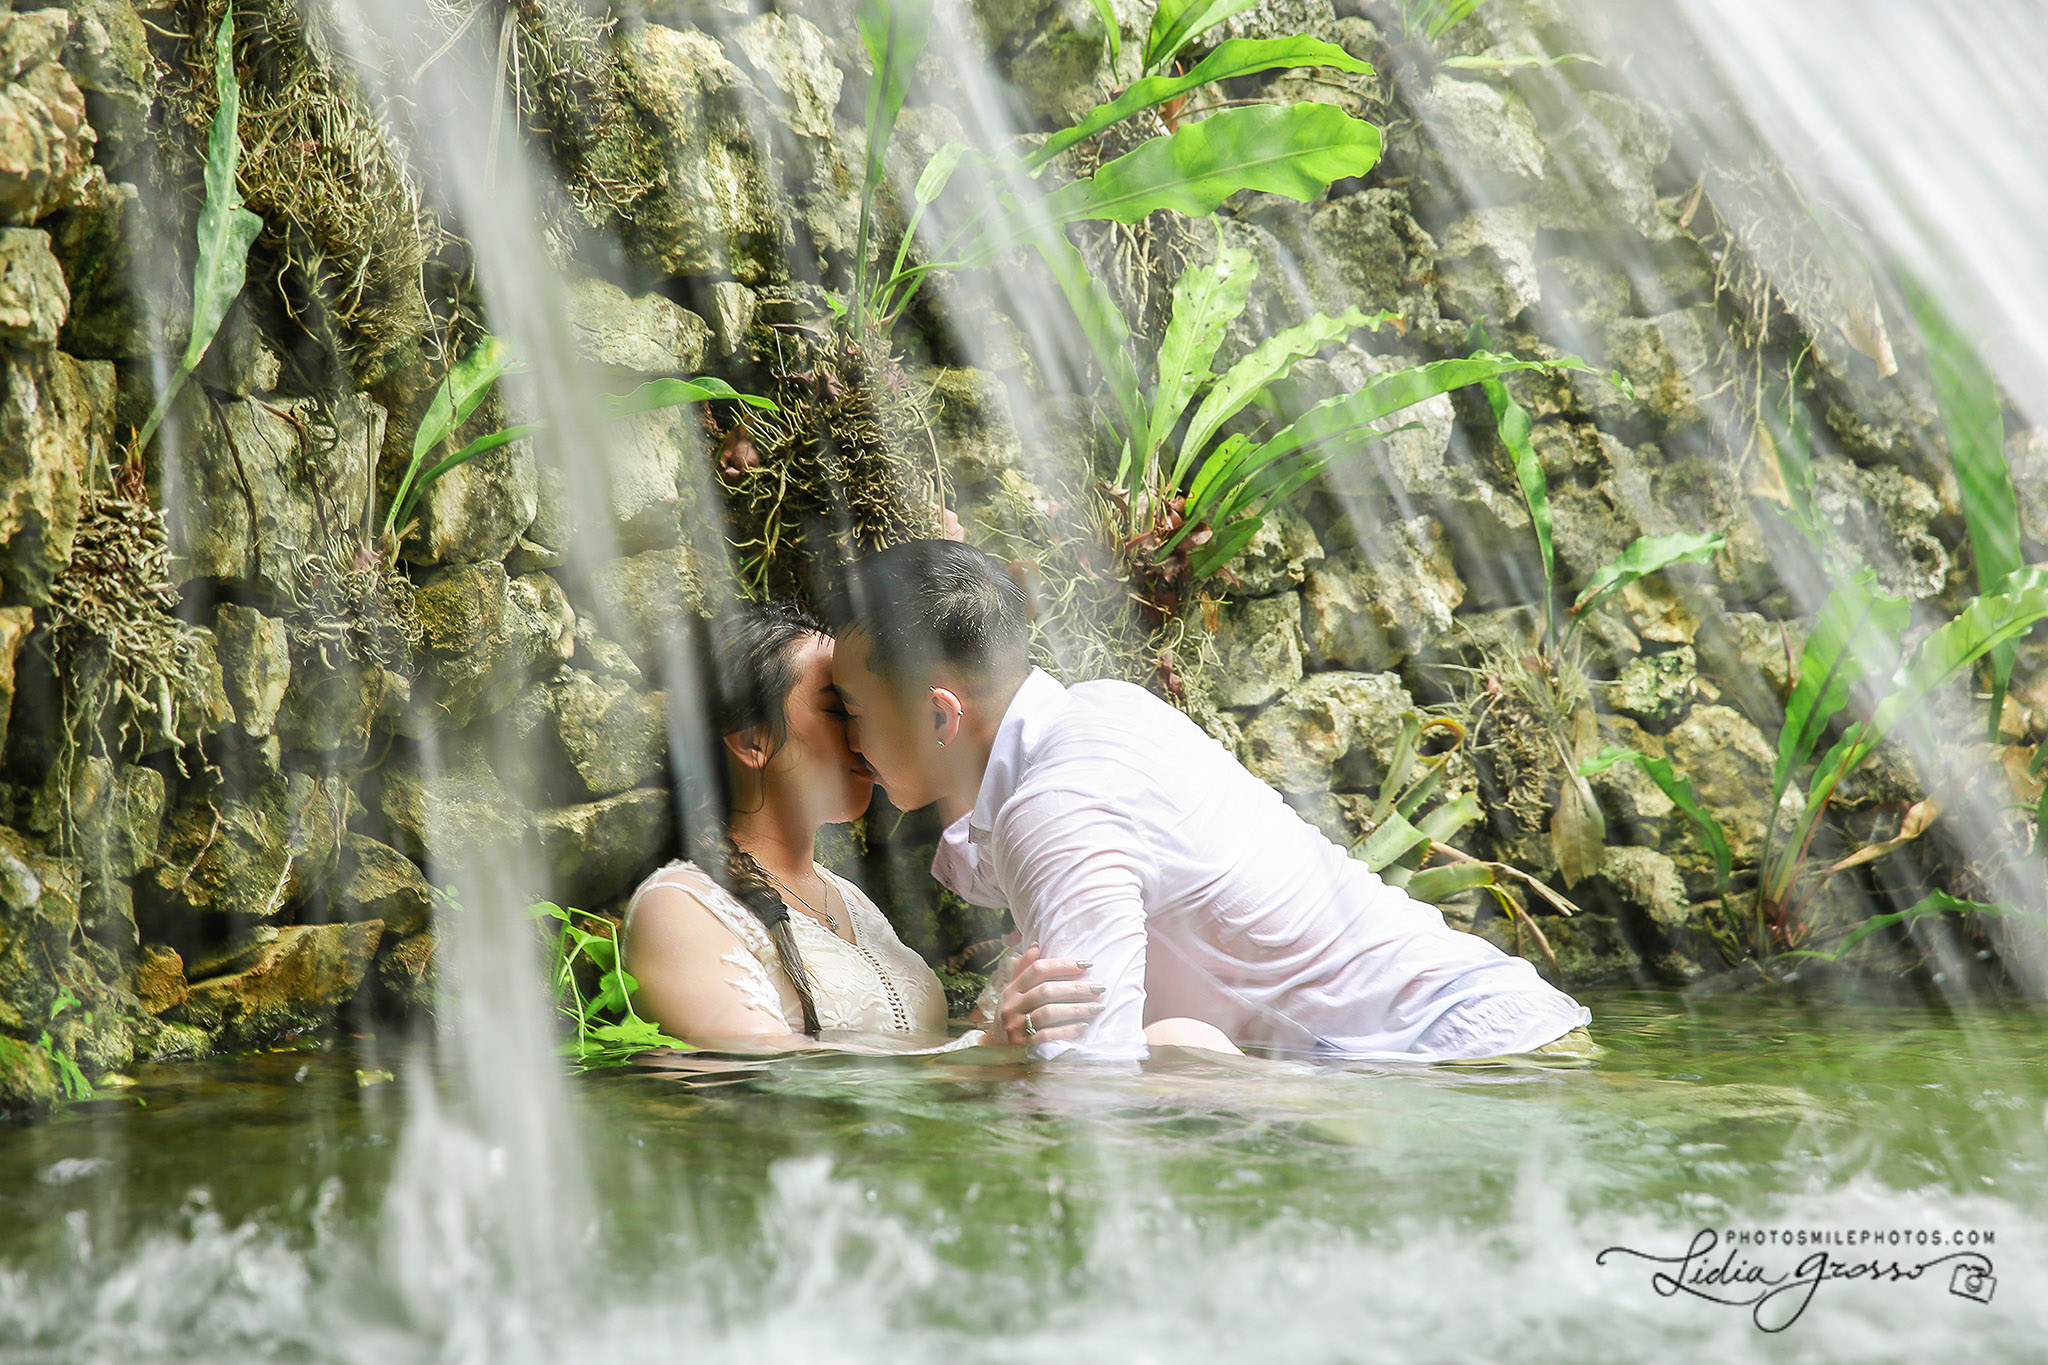 Cenote and Jungle sessions Riviera Maya, Trash the Dress photography, Cancun wedding Photographer, Engagement session Cancun, Lidia Grosso Photography